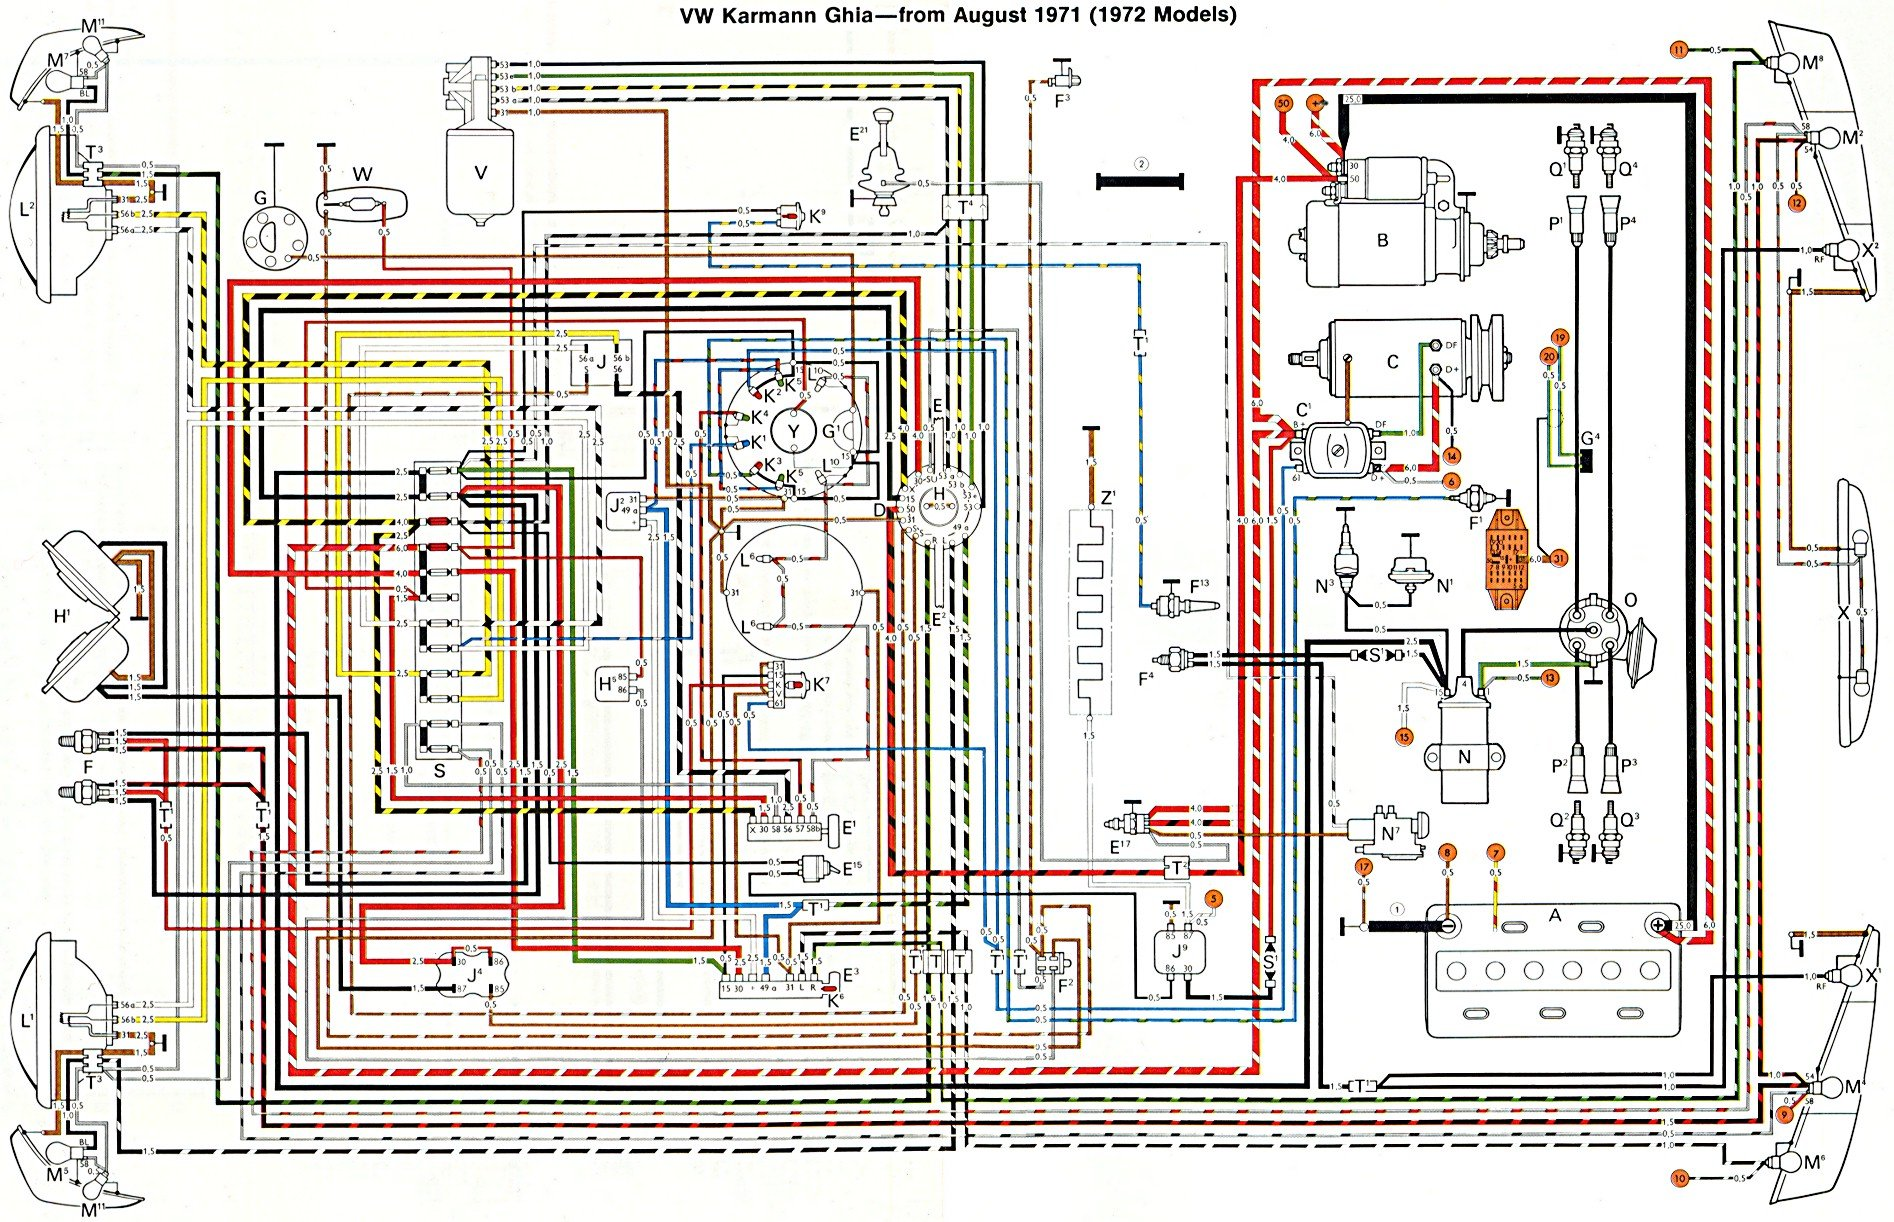 72ghia thesamba com karmann ghia wiring diagrams 1974 porsche 911 wiring diagram at bakdesigns.co